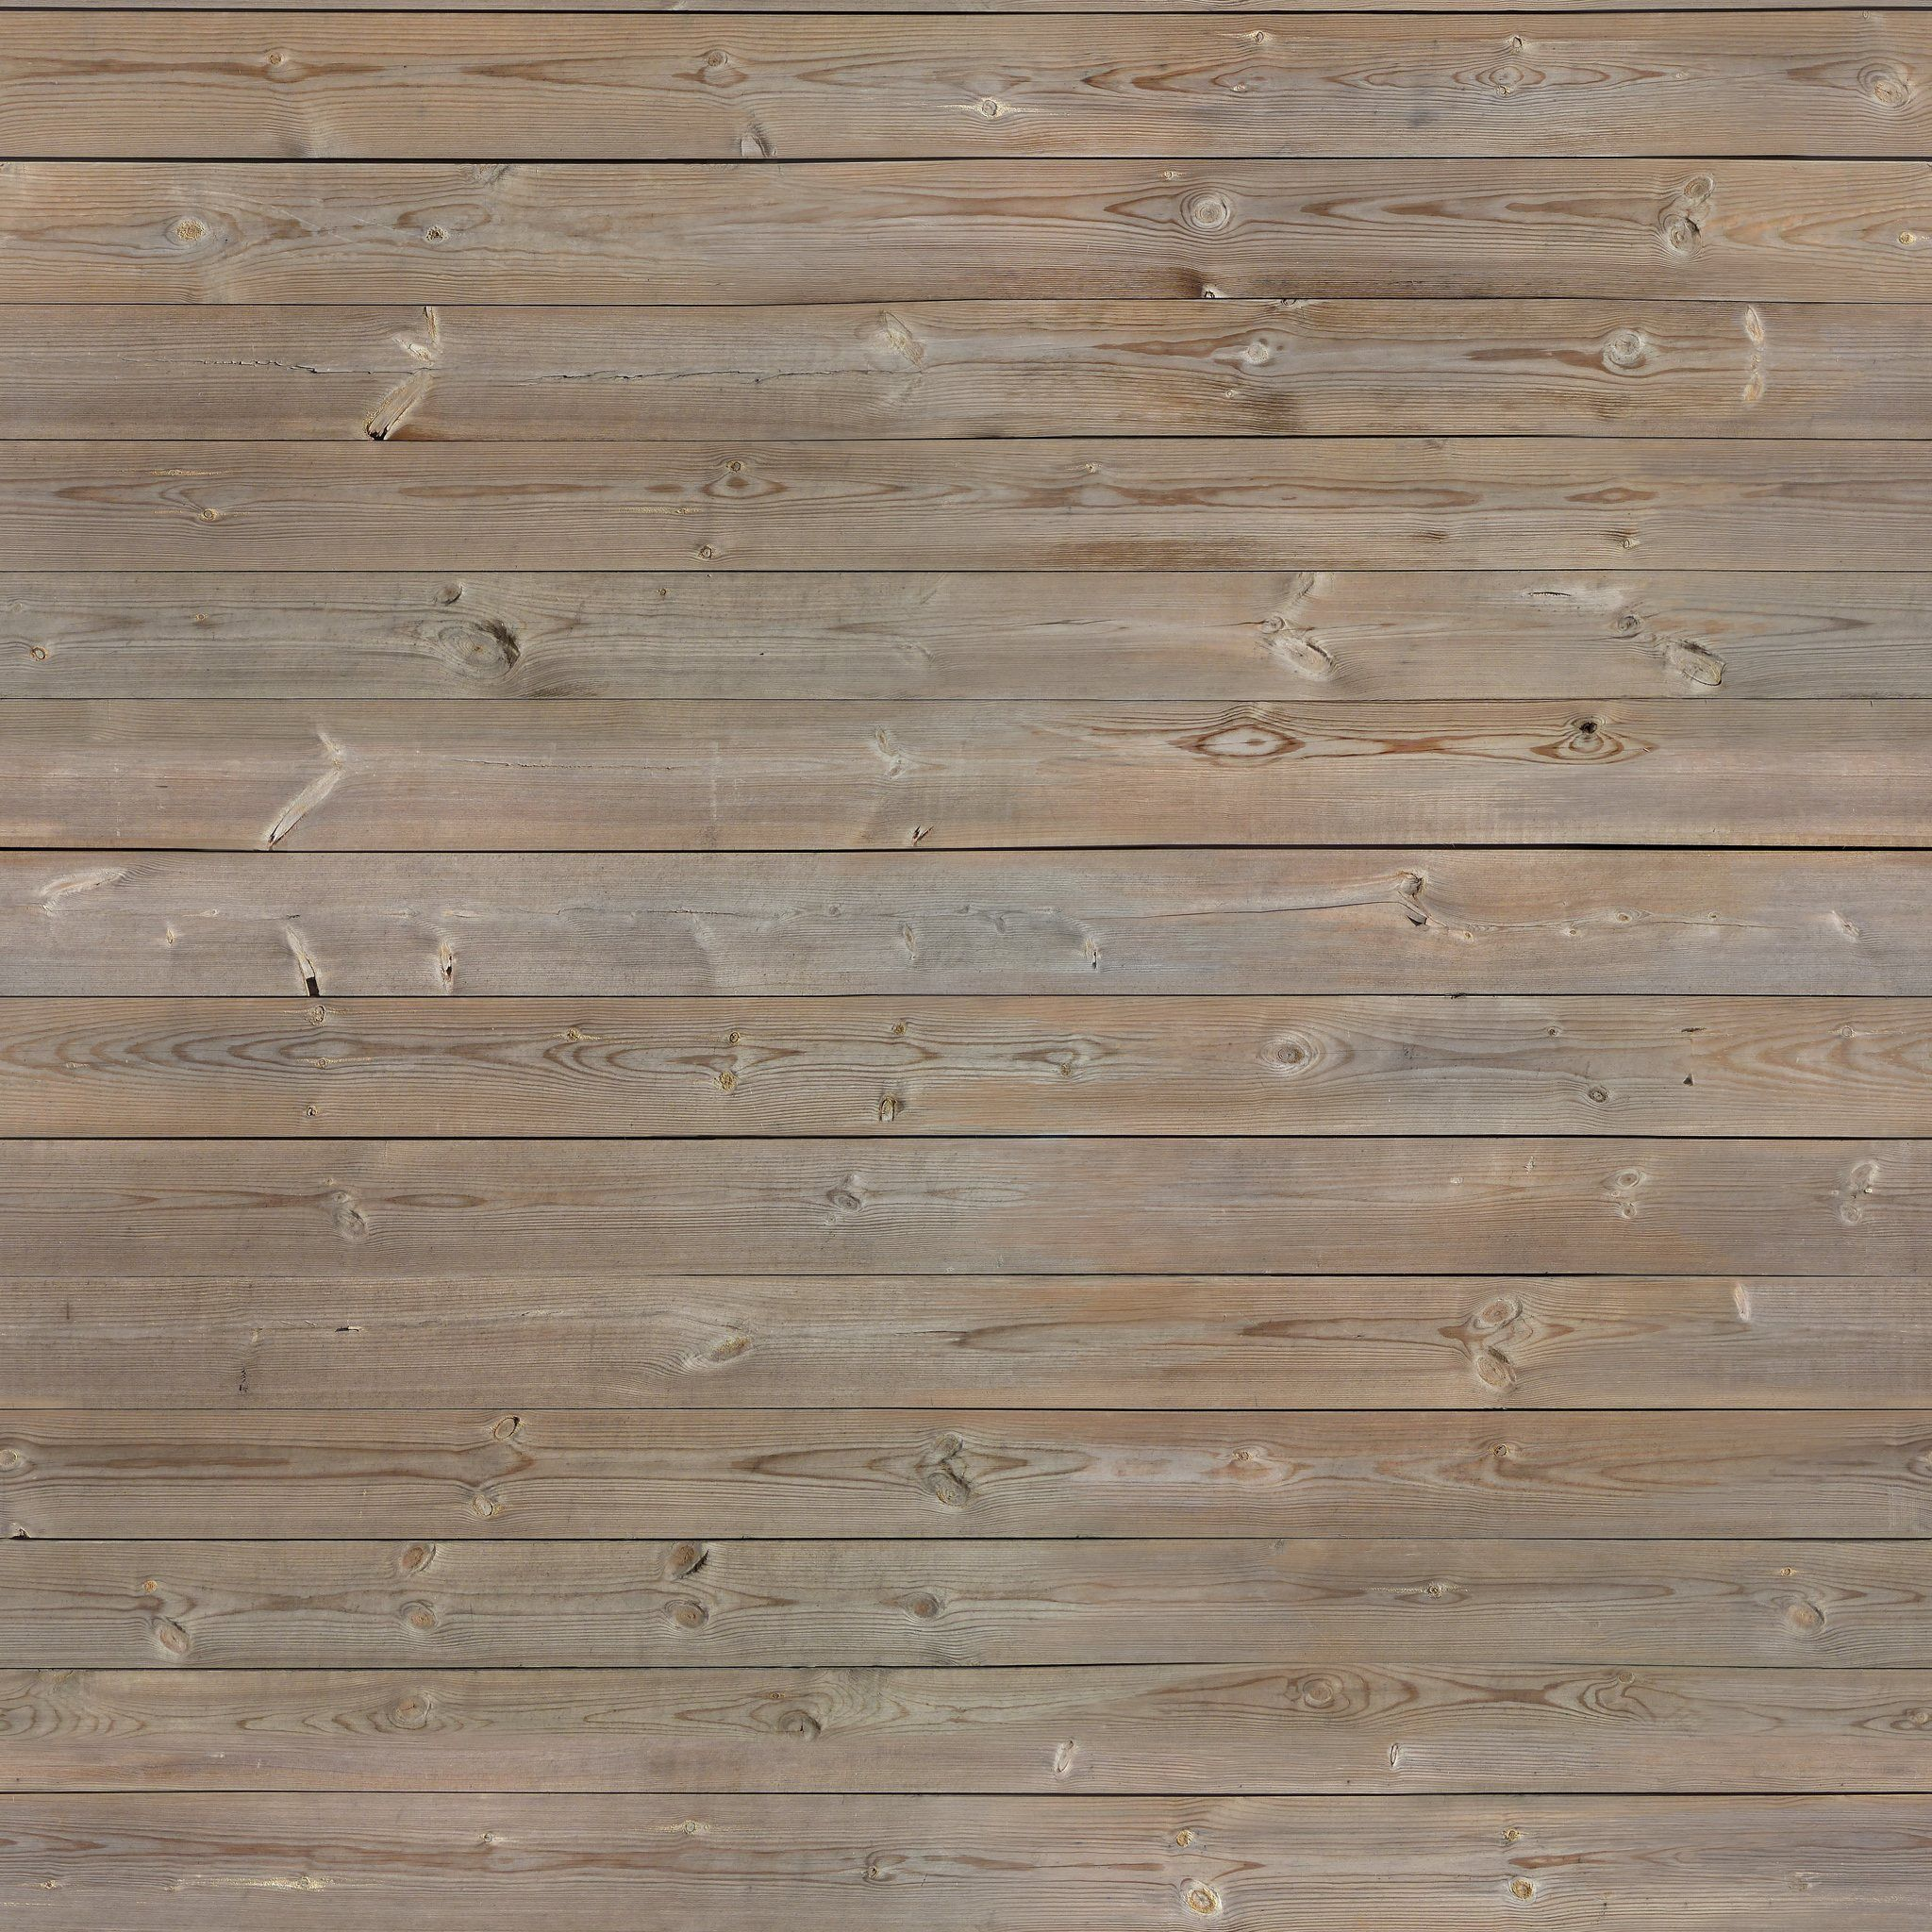 Rough Wood Texture Seamless Decor N Decor Pinterest Wood Texture Seamless Woods And White